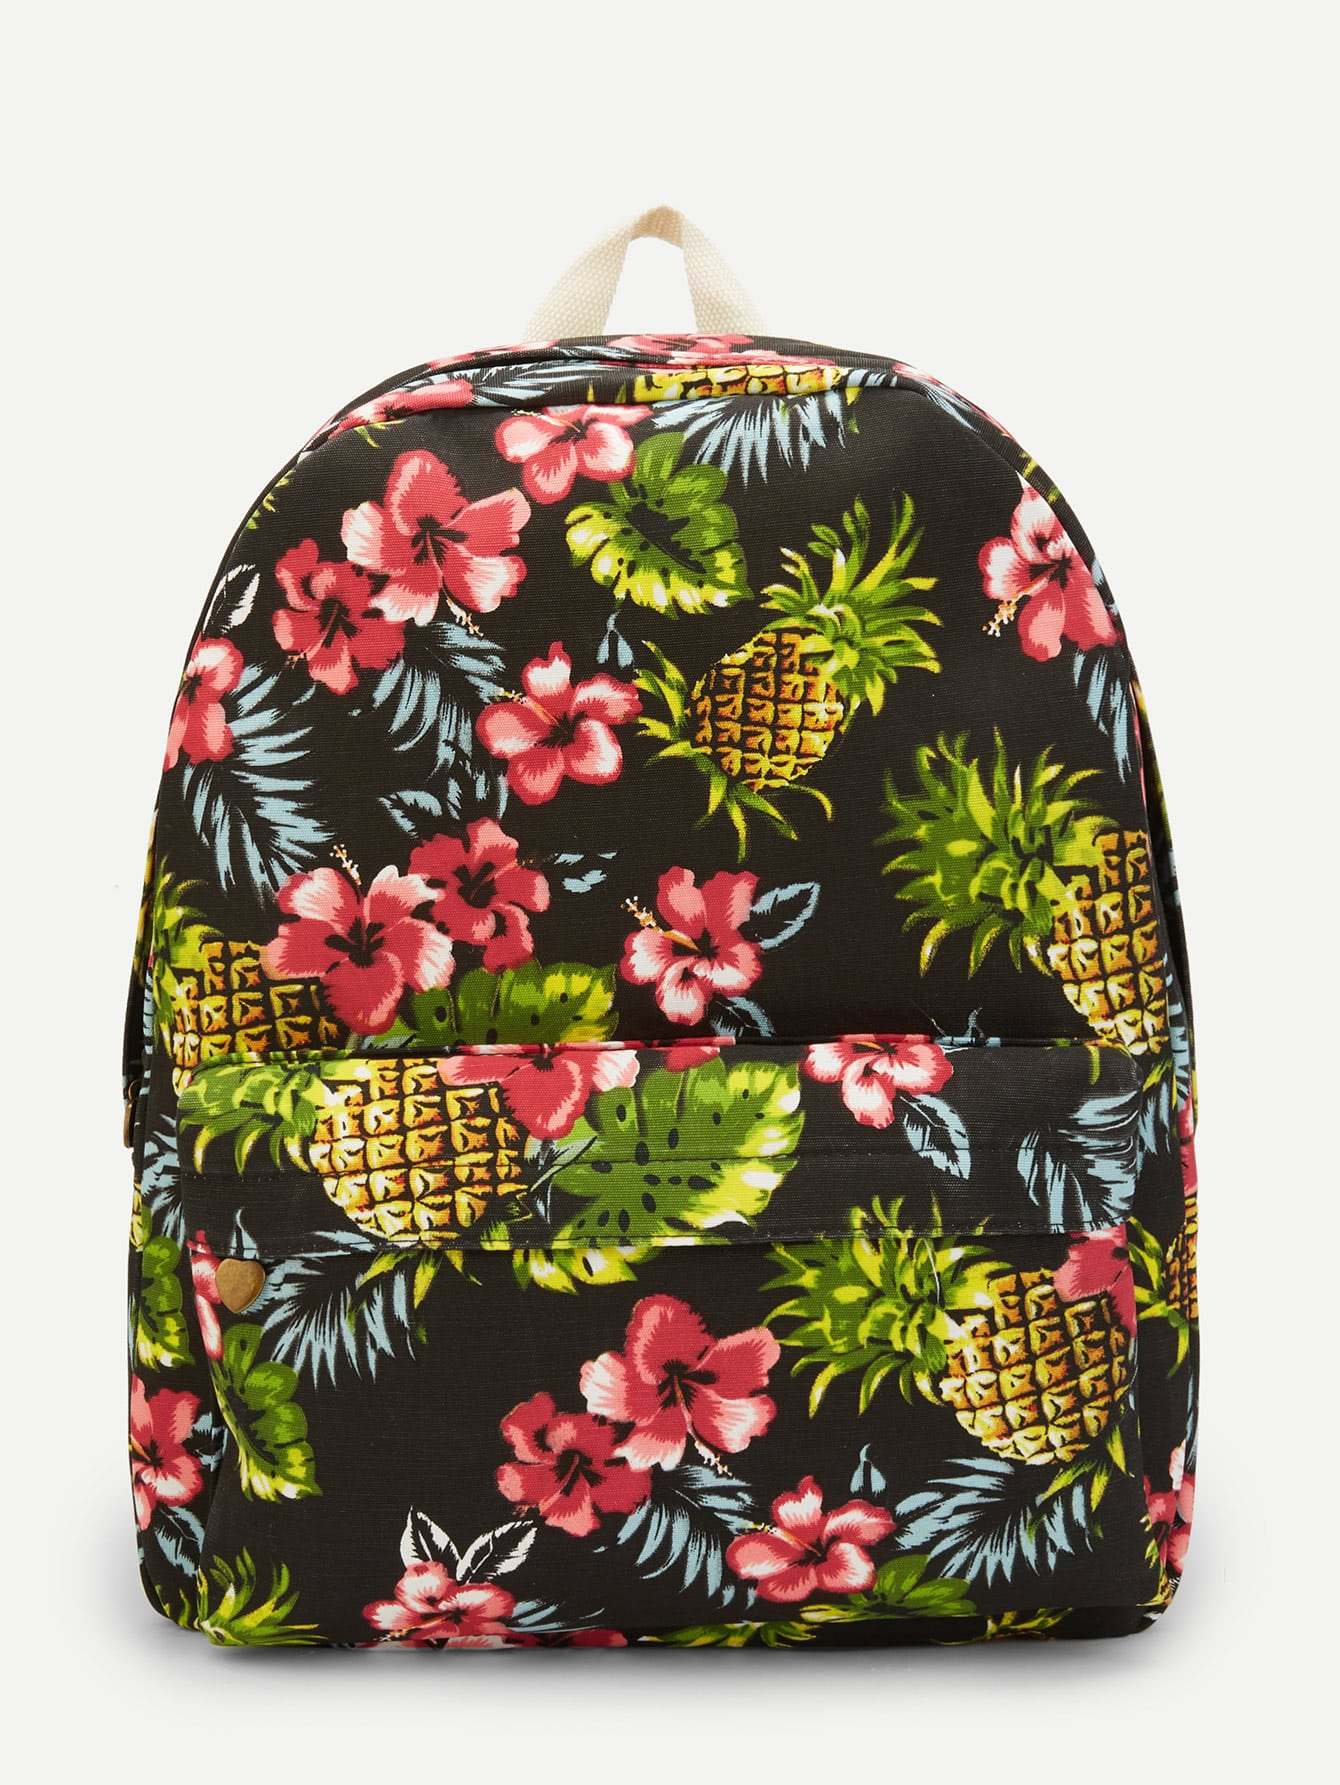 Flower & Pineapple Print Backpack